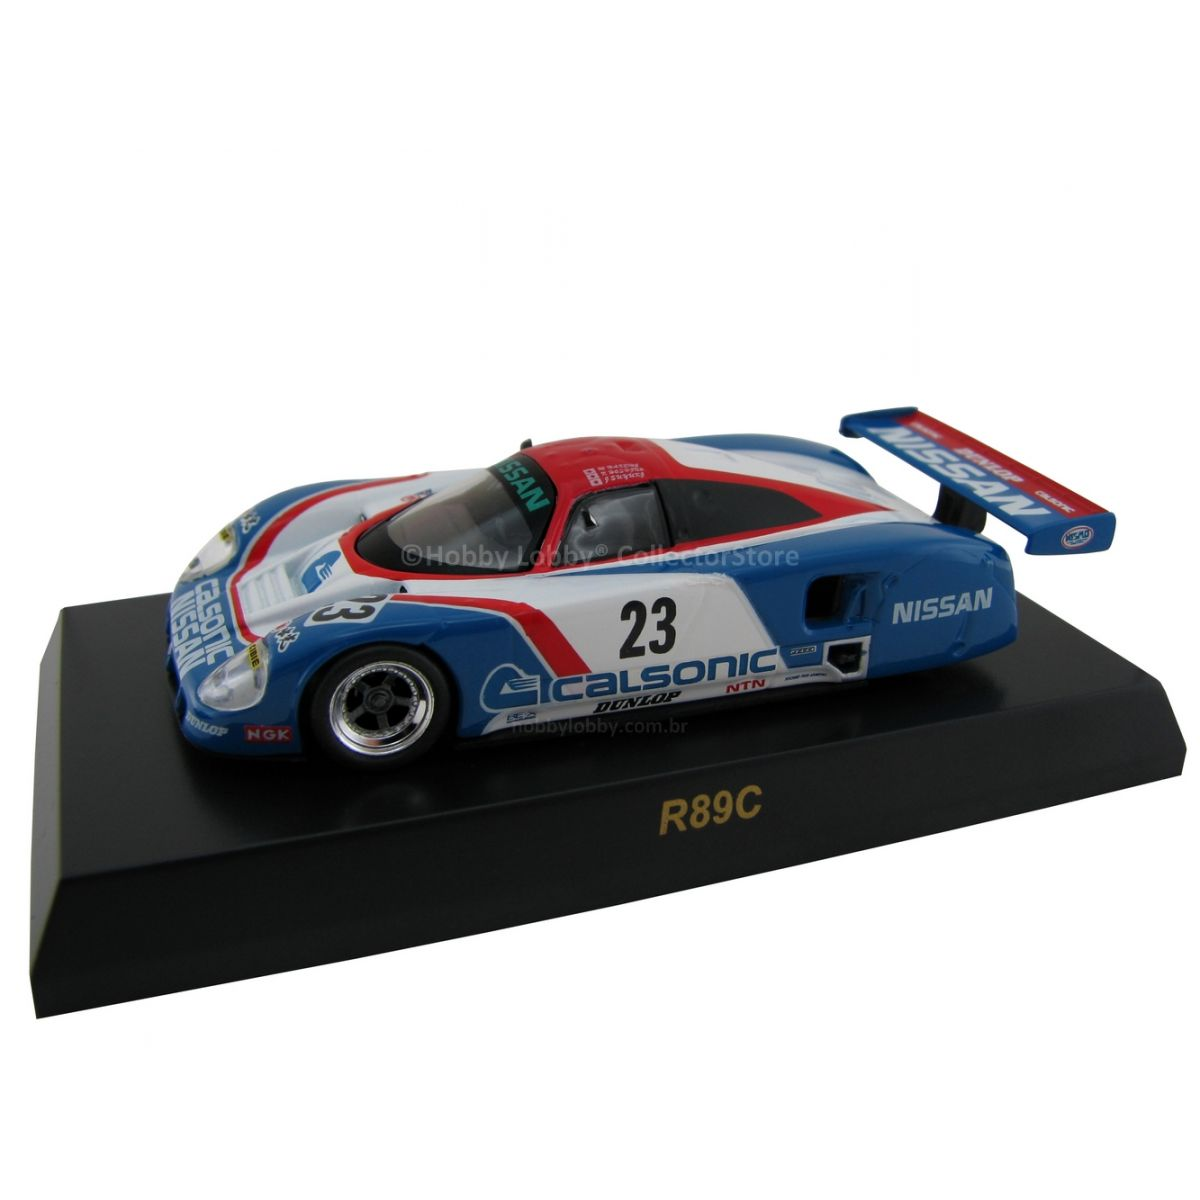 Kyosho - Nissan Racing Car - Nissan R89C